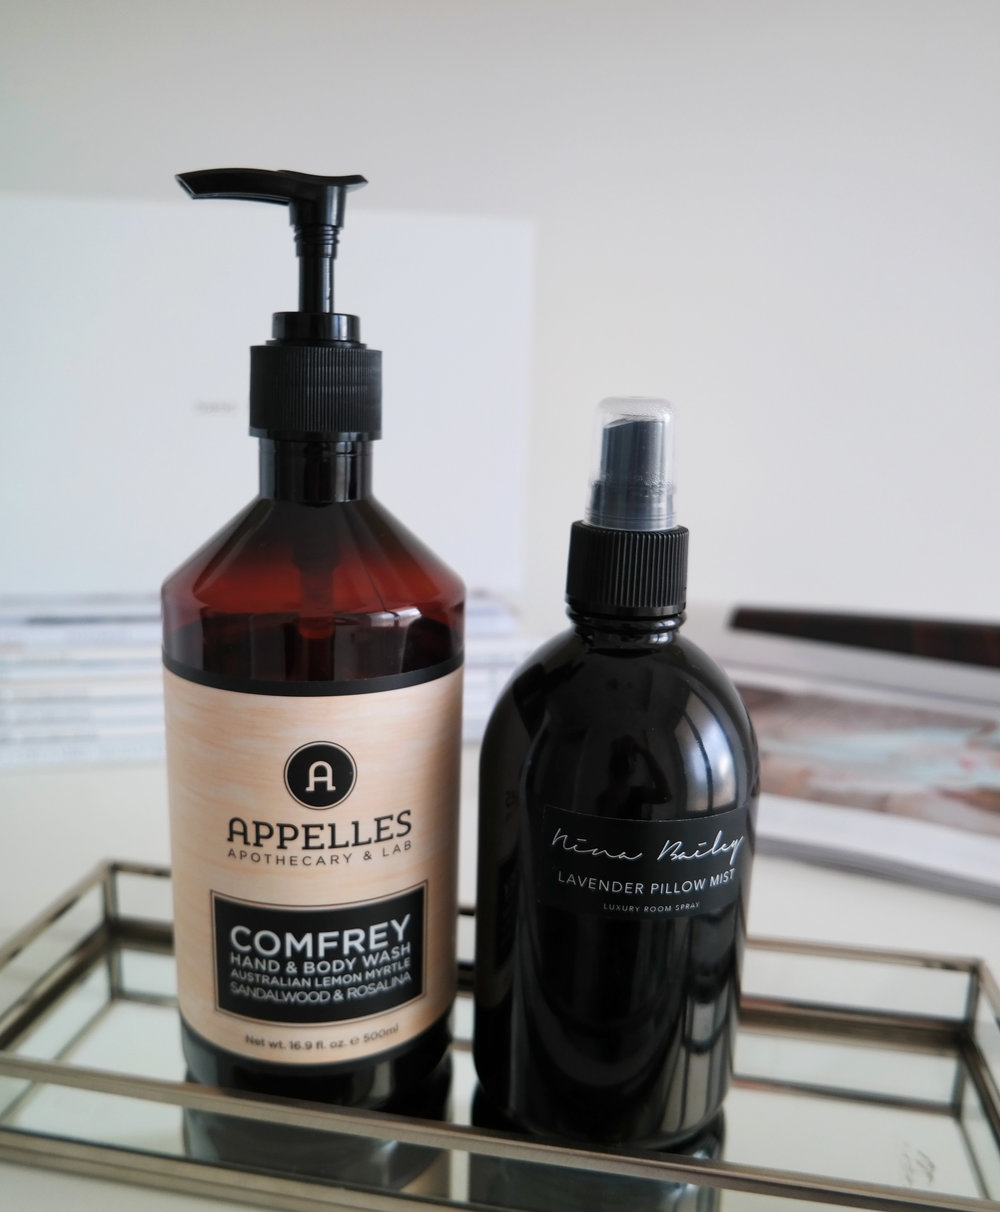 Apelles Comfrey Hand and Body Wash / Nina Bailey Lavender Pillow Mist